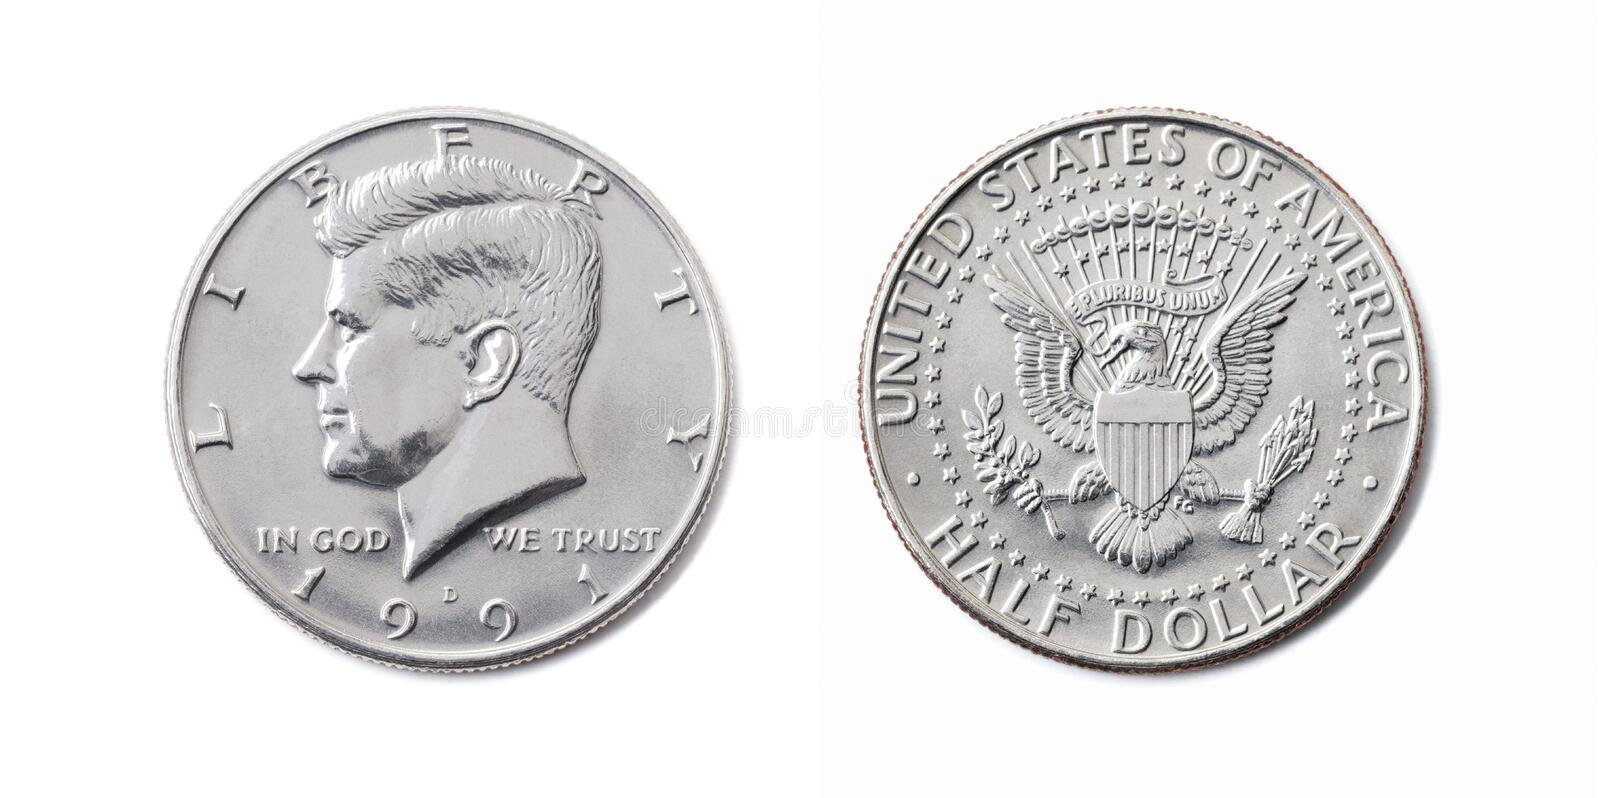 american half dollar coin, Fifty cent, 50 c, USA 1/2 dollar isolate on white background. John F Kennedy on silver coin realistic royalty free stock photography